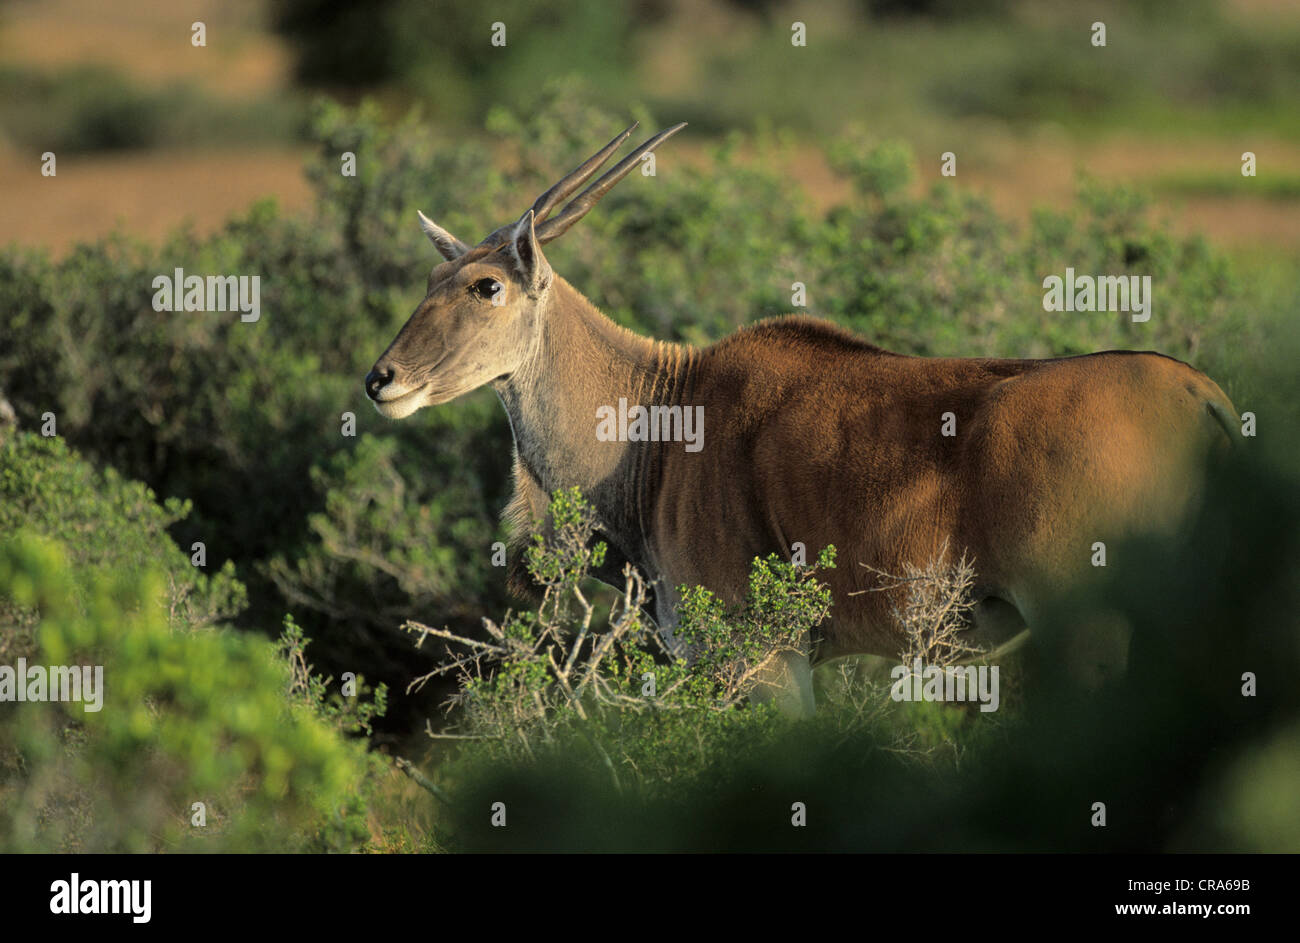 Eland (Taurotragus oryx), De Hoop Nature Reserve, Western Cape, South Africa, Africa - Stock Image